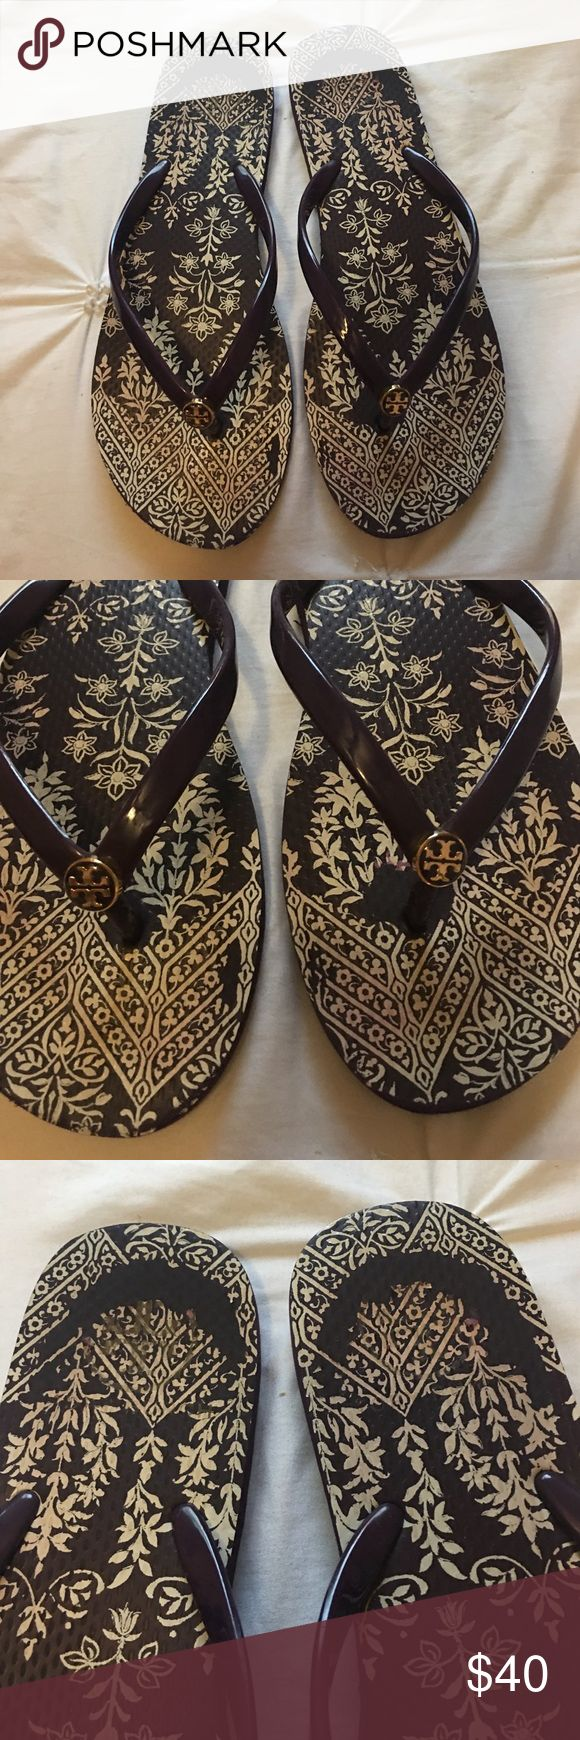 Tory Burch sandals Purple Tory Burch sandals good condition size 9 Tory Burch Shoes Sandals